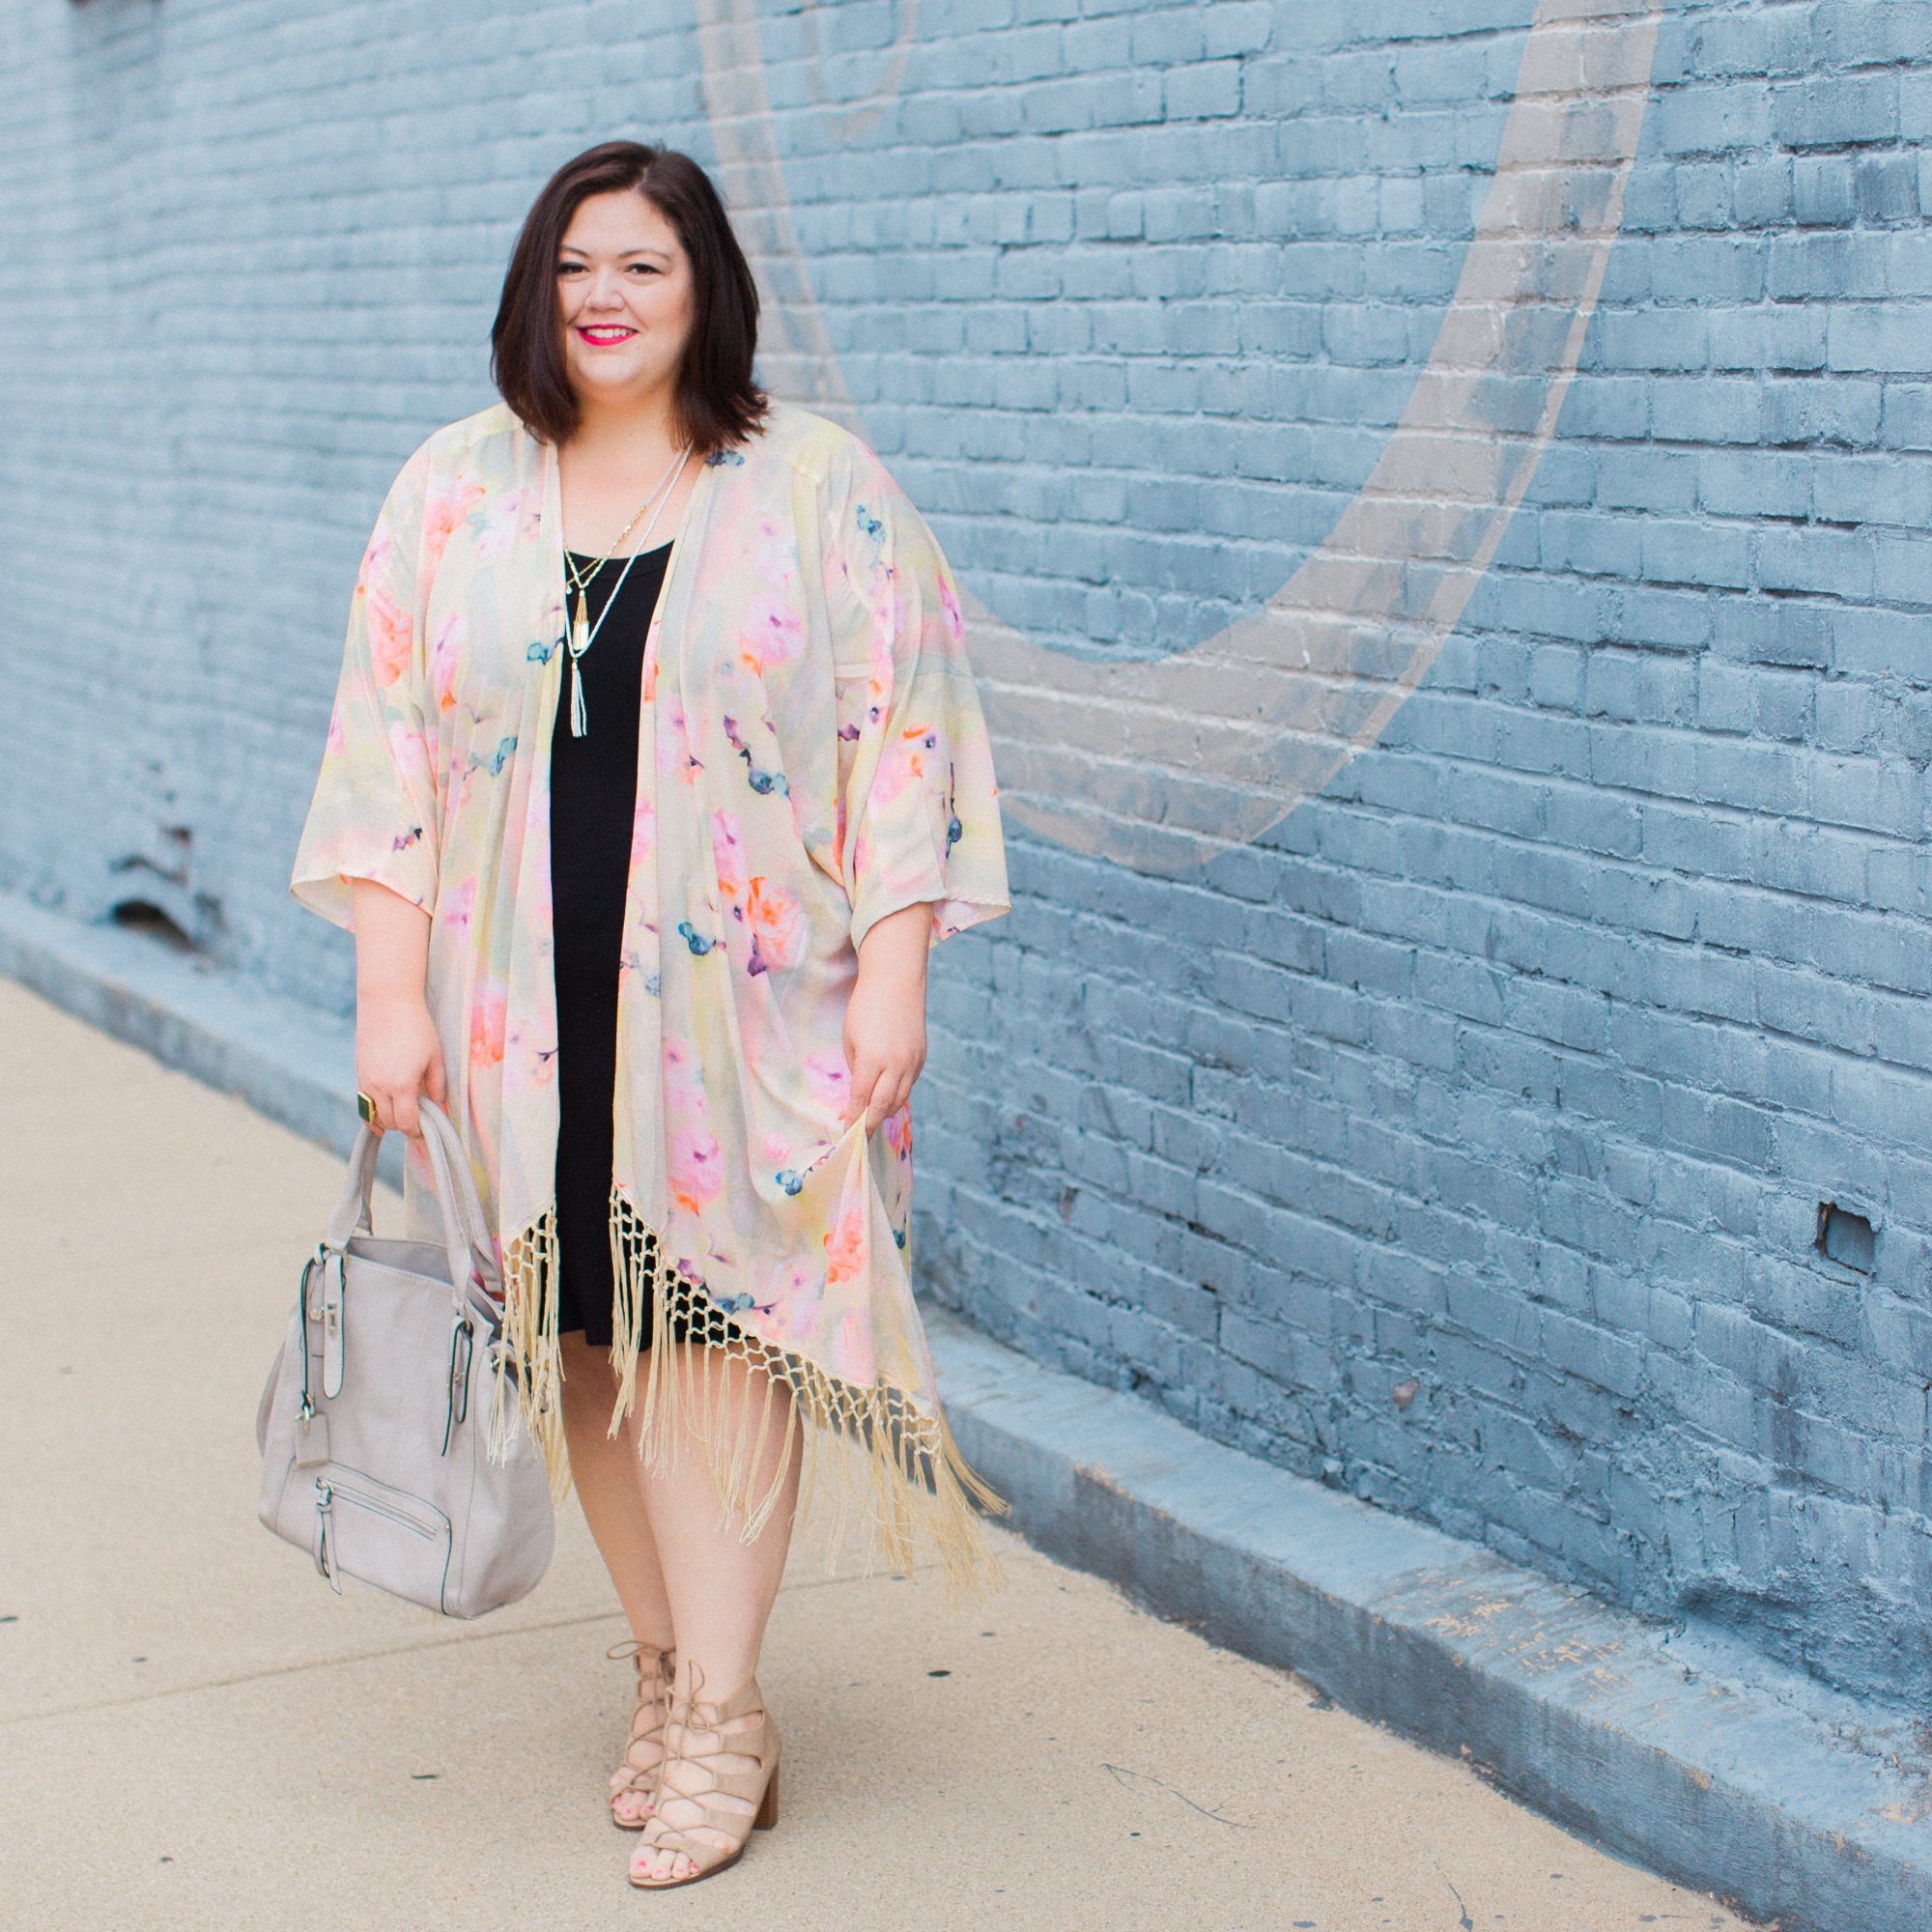 The Melissa Mccarthy Fringe Floral Kimono On Auntically Emmie Boho Fringe From Melissa Mccarthy Melissa Mccarthy Clothing Line Where To Buy Melissa Mccarthy Clothing Size Guide nice food Melissa Mccarthy Clothing